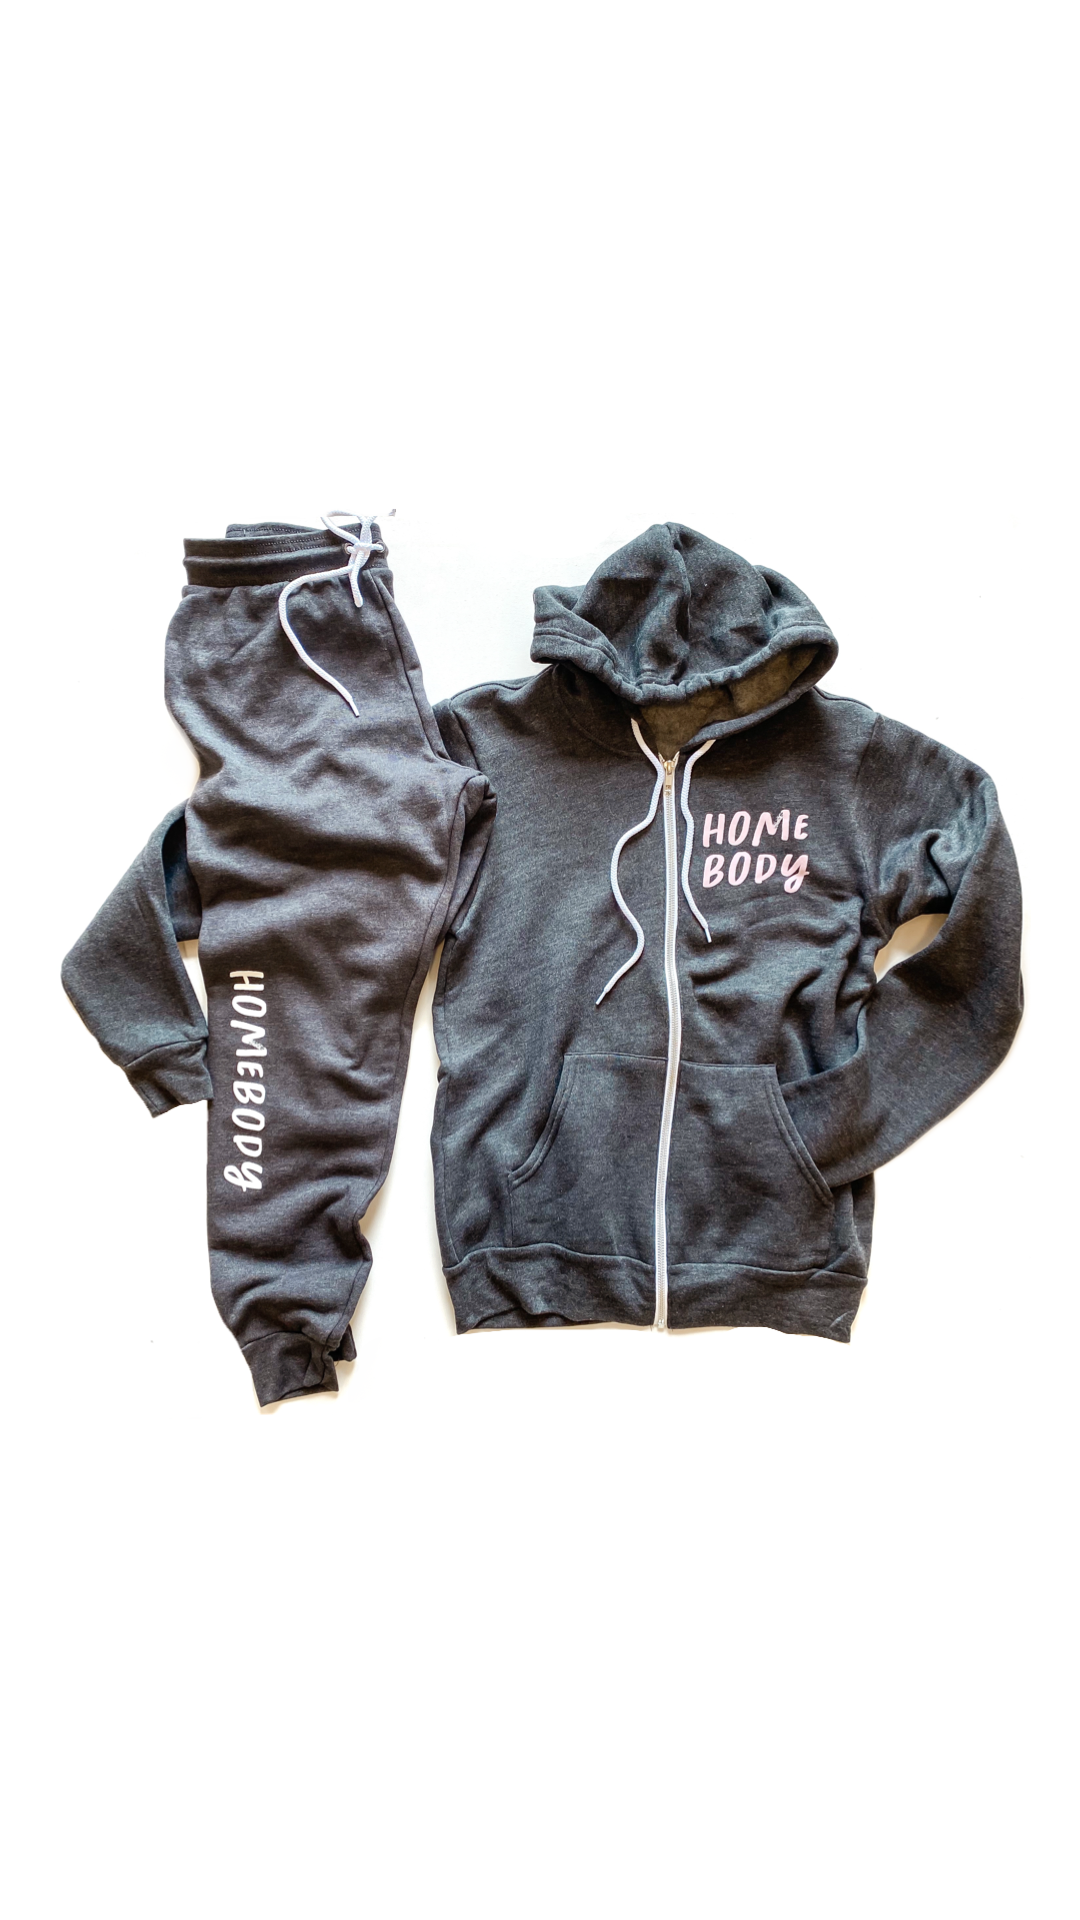 Homebody Zip Up Hoodie [Ships in 3-5 Business Days]